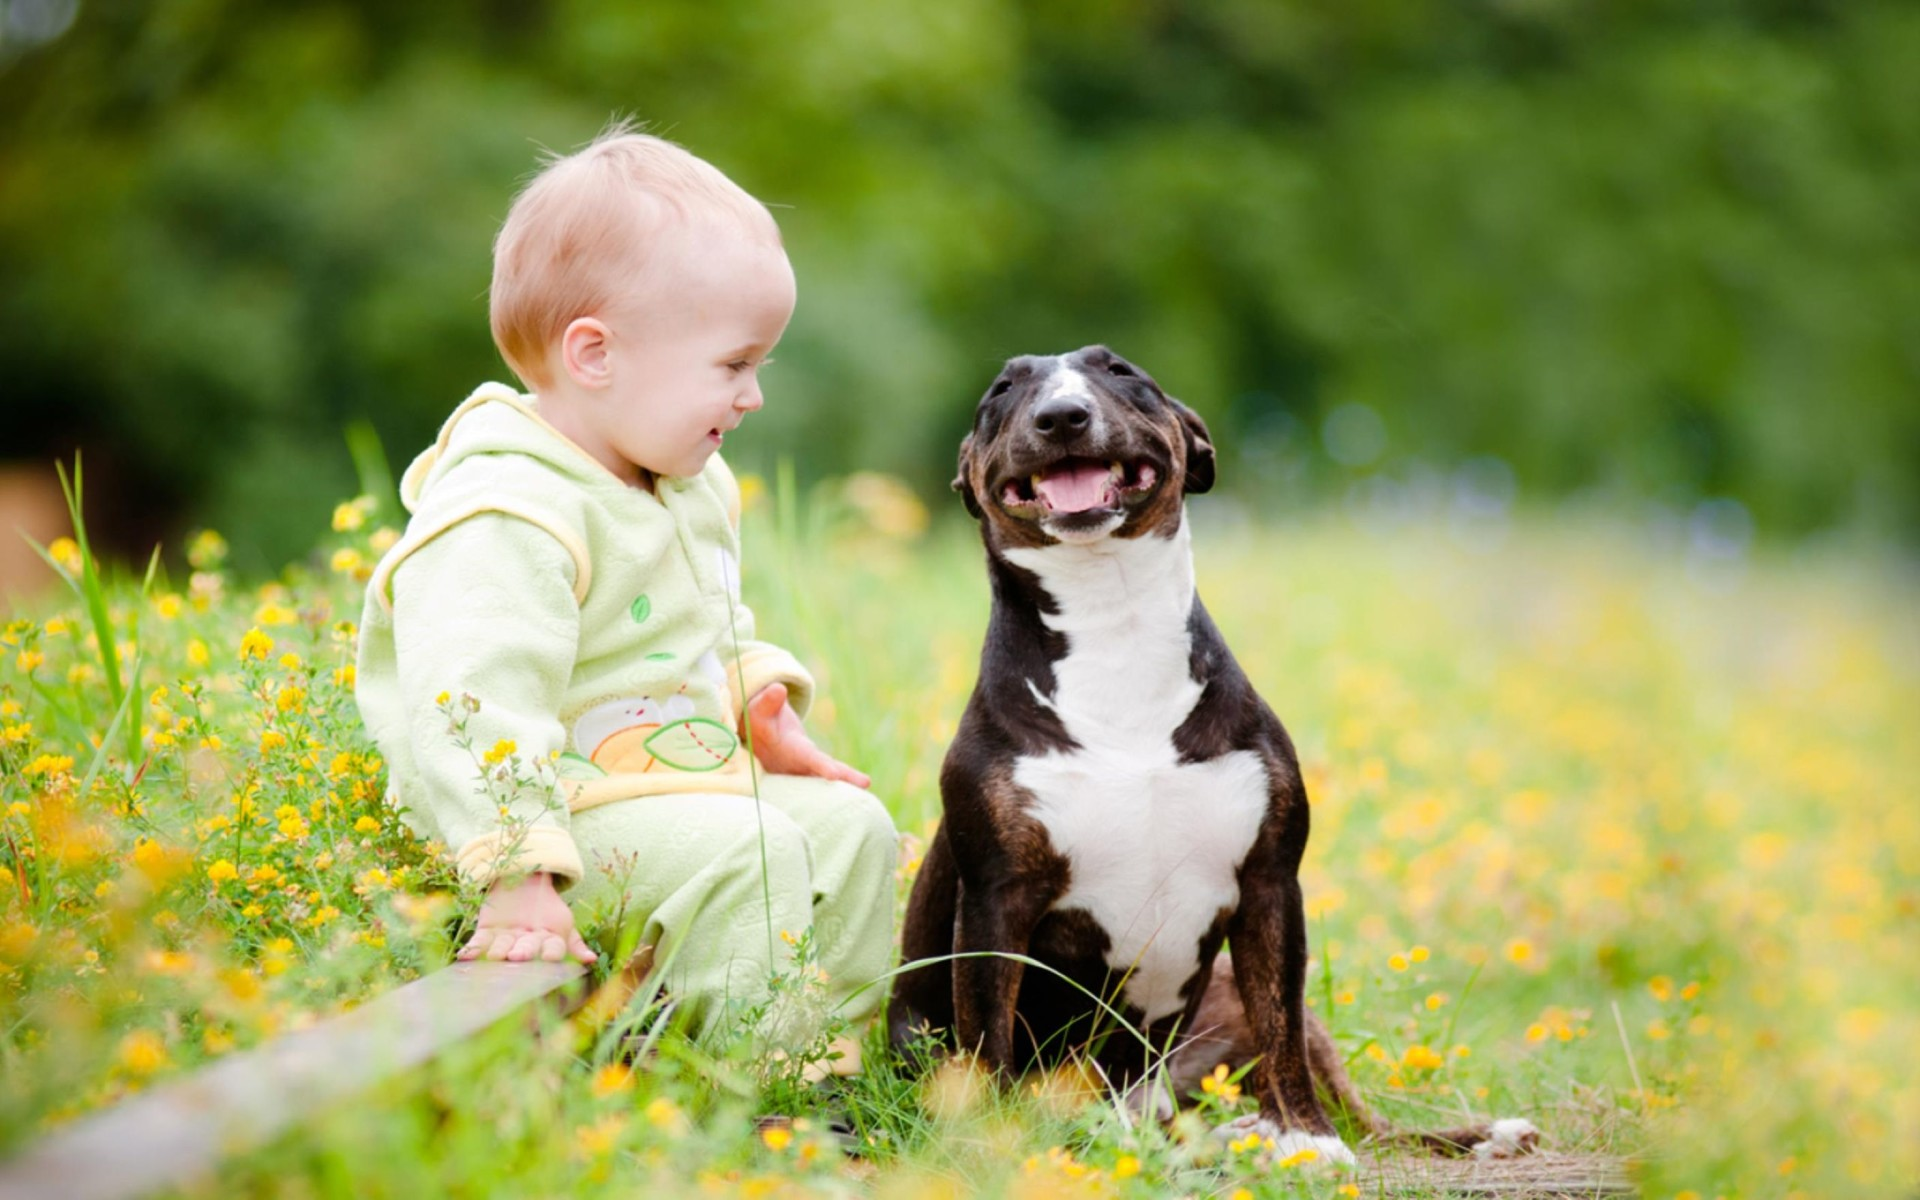 Cute Image of A Small Child And Puppy Wallpaper